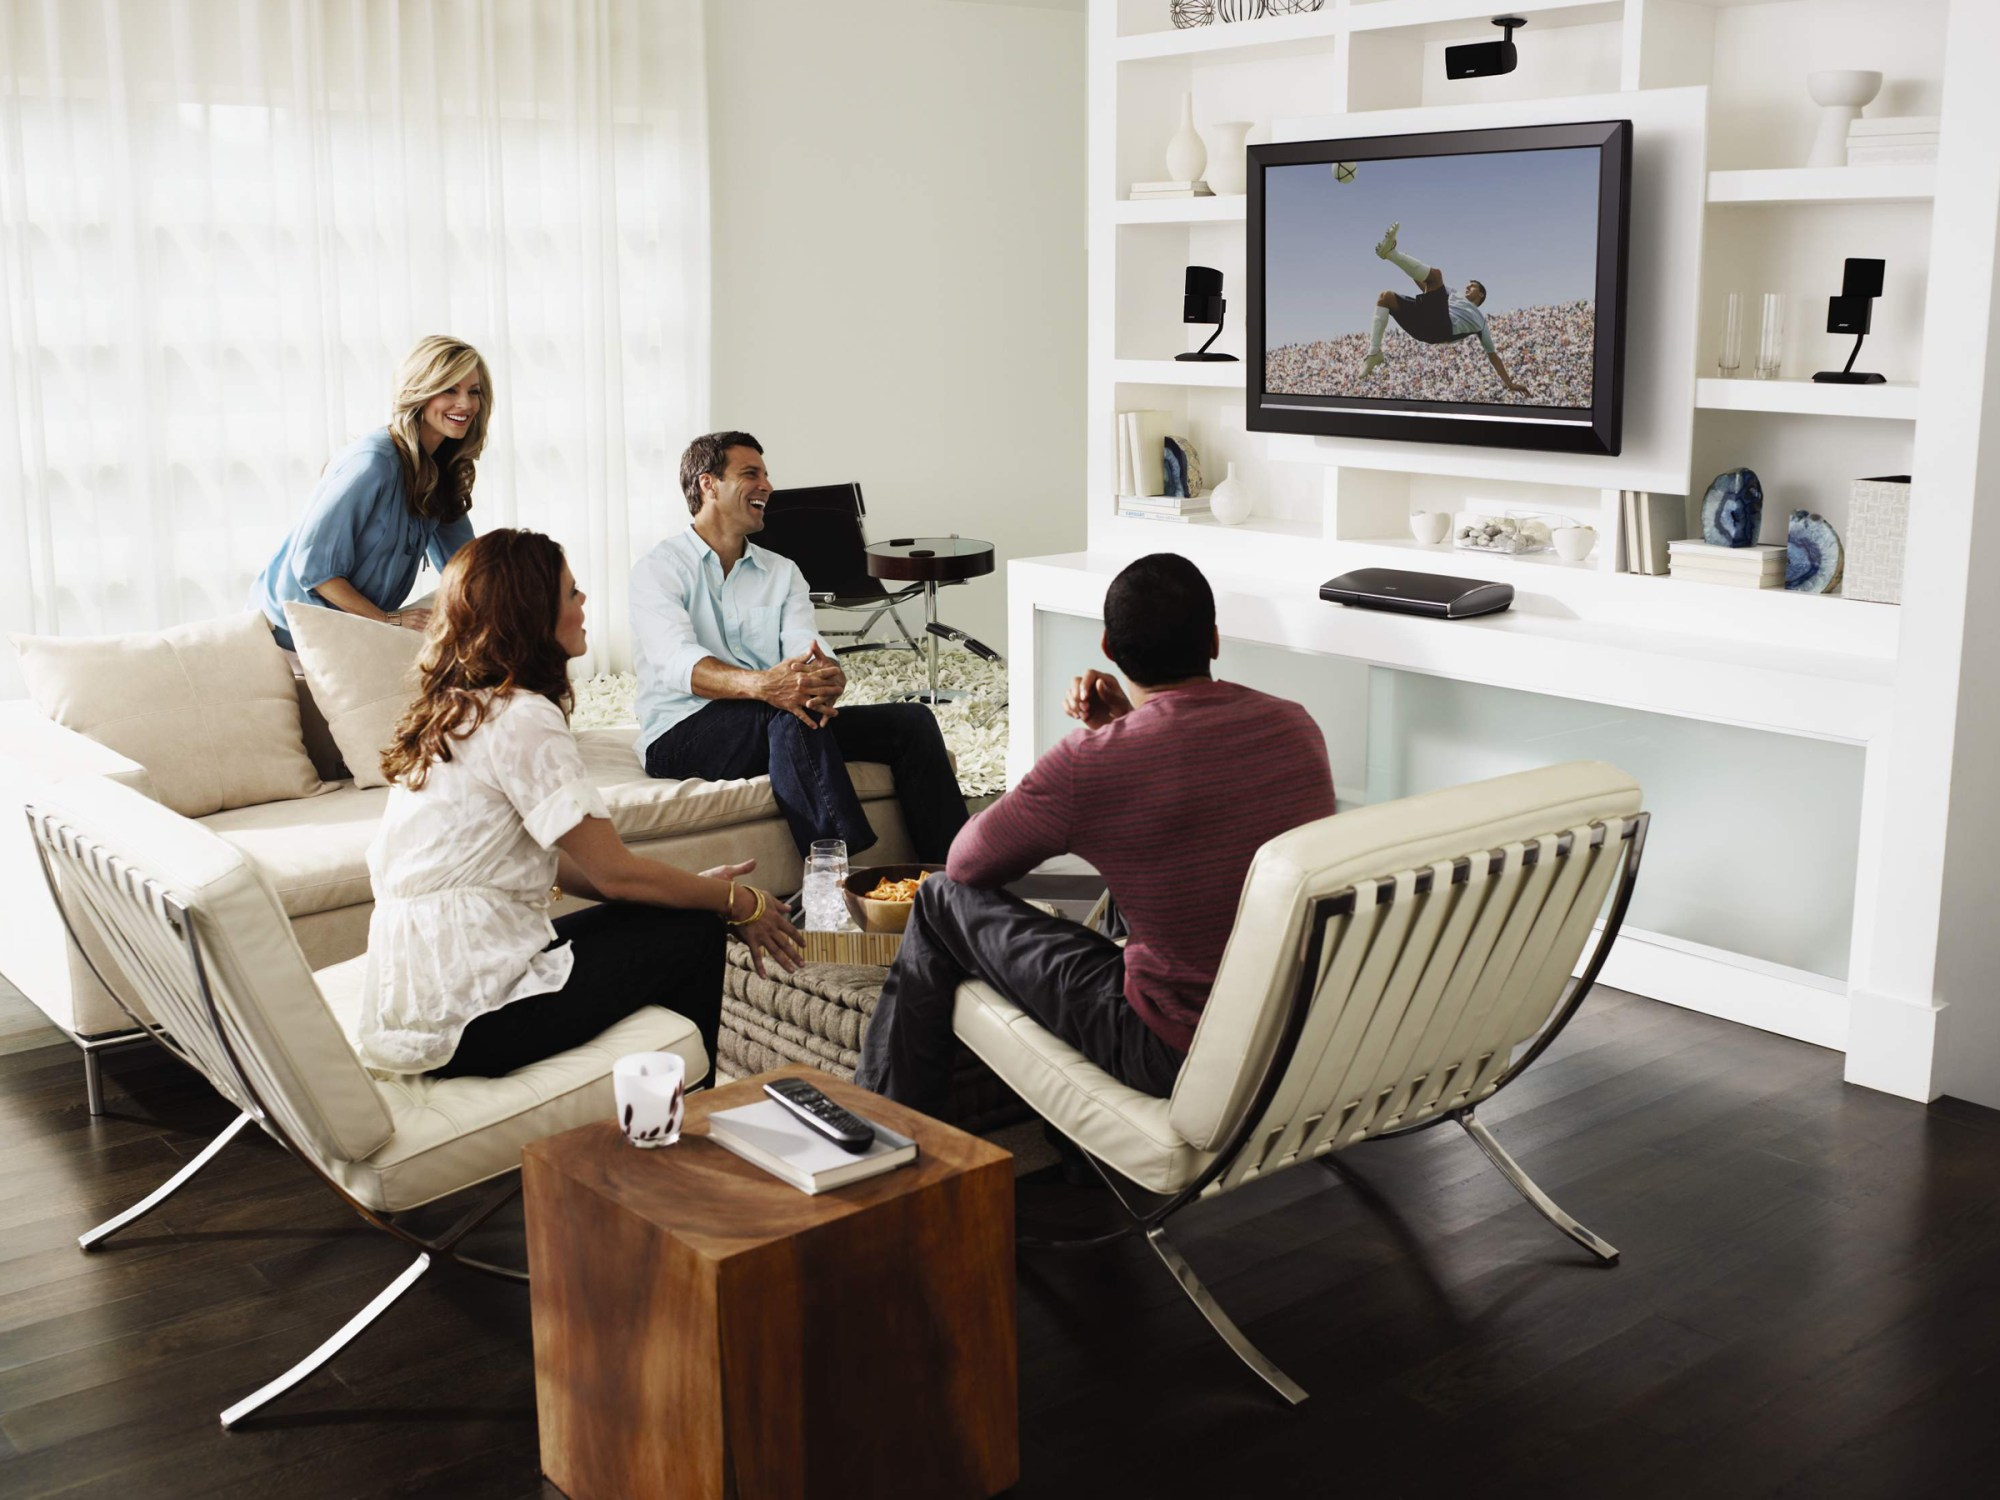 hight resolution of unveiled bose lifestyle series home entertainment system